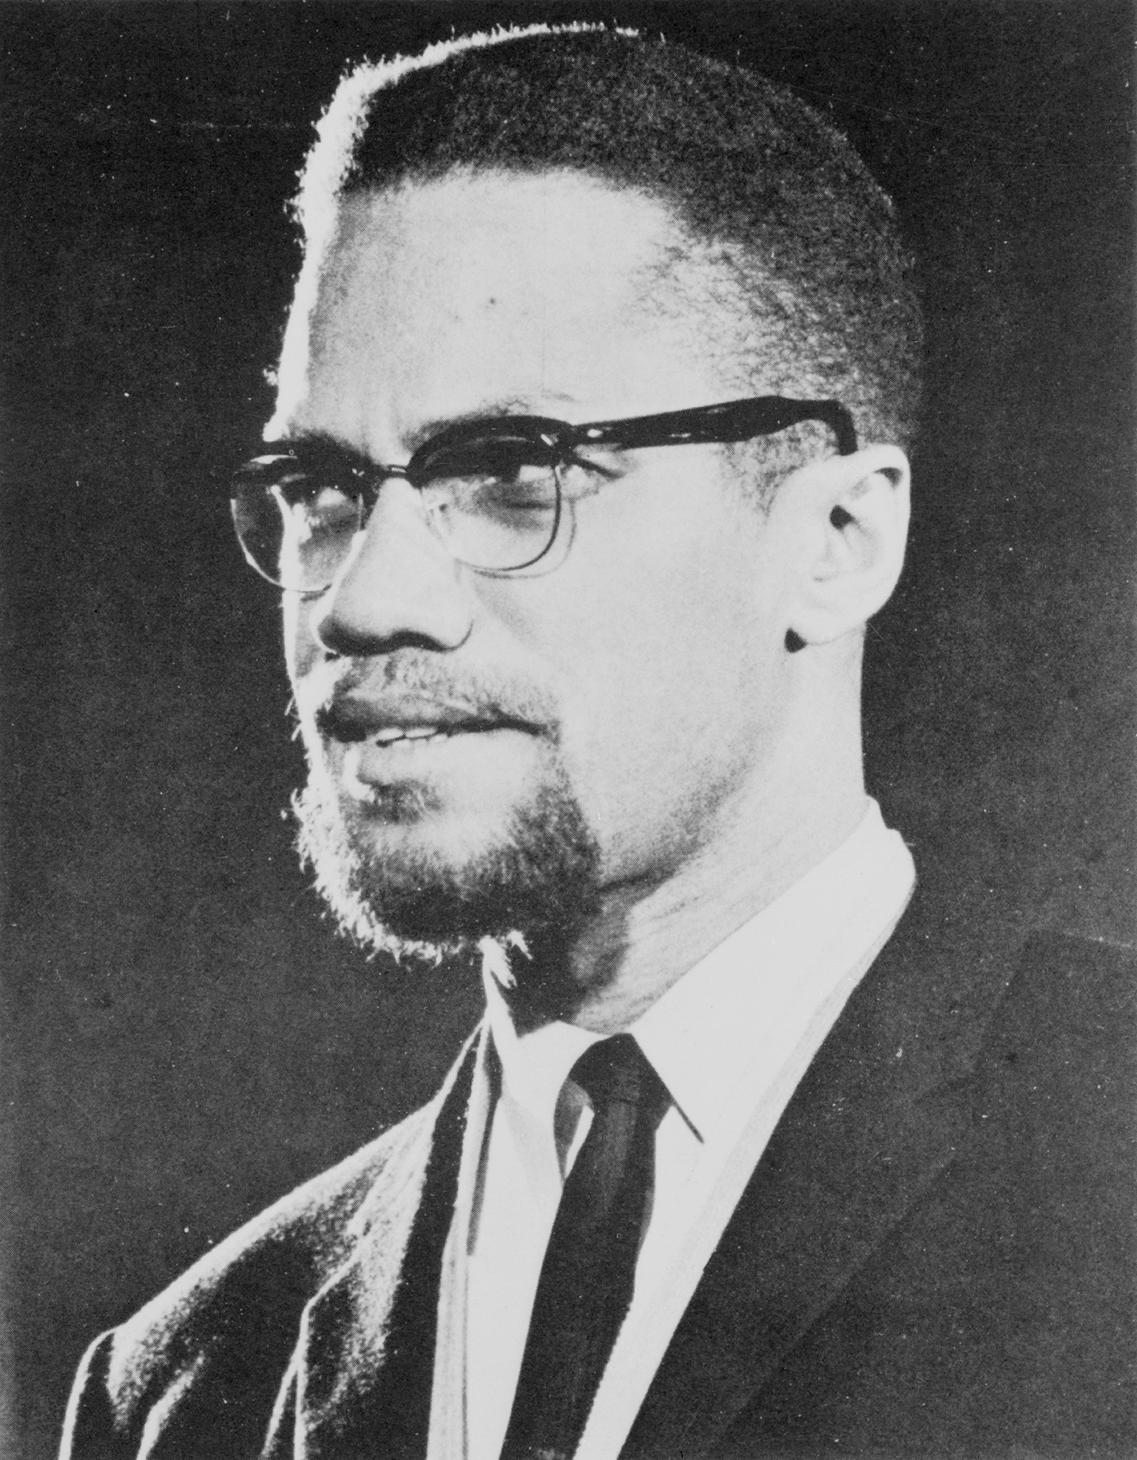 malcolm x a true self made Both booker t washington and malcolm x have undoubtly made their mark on and have impacted the influence of booker t washington v malcolm x booker t washington thought more rationally deciding that self-development and self-sustainment of the african american community.